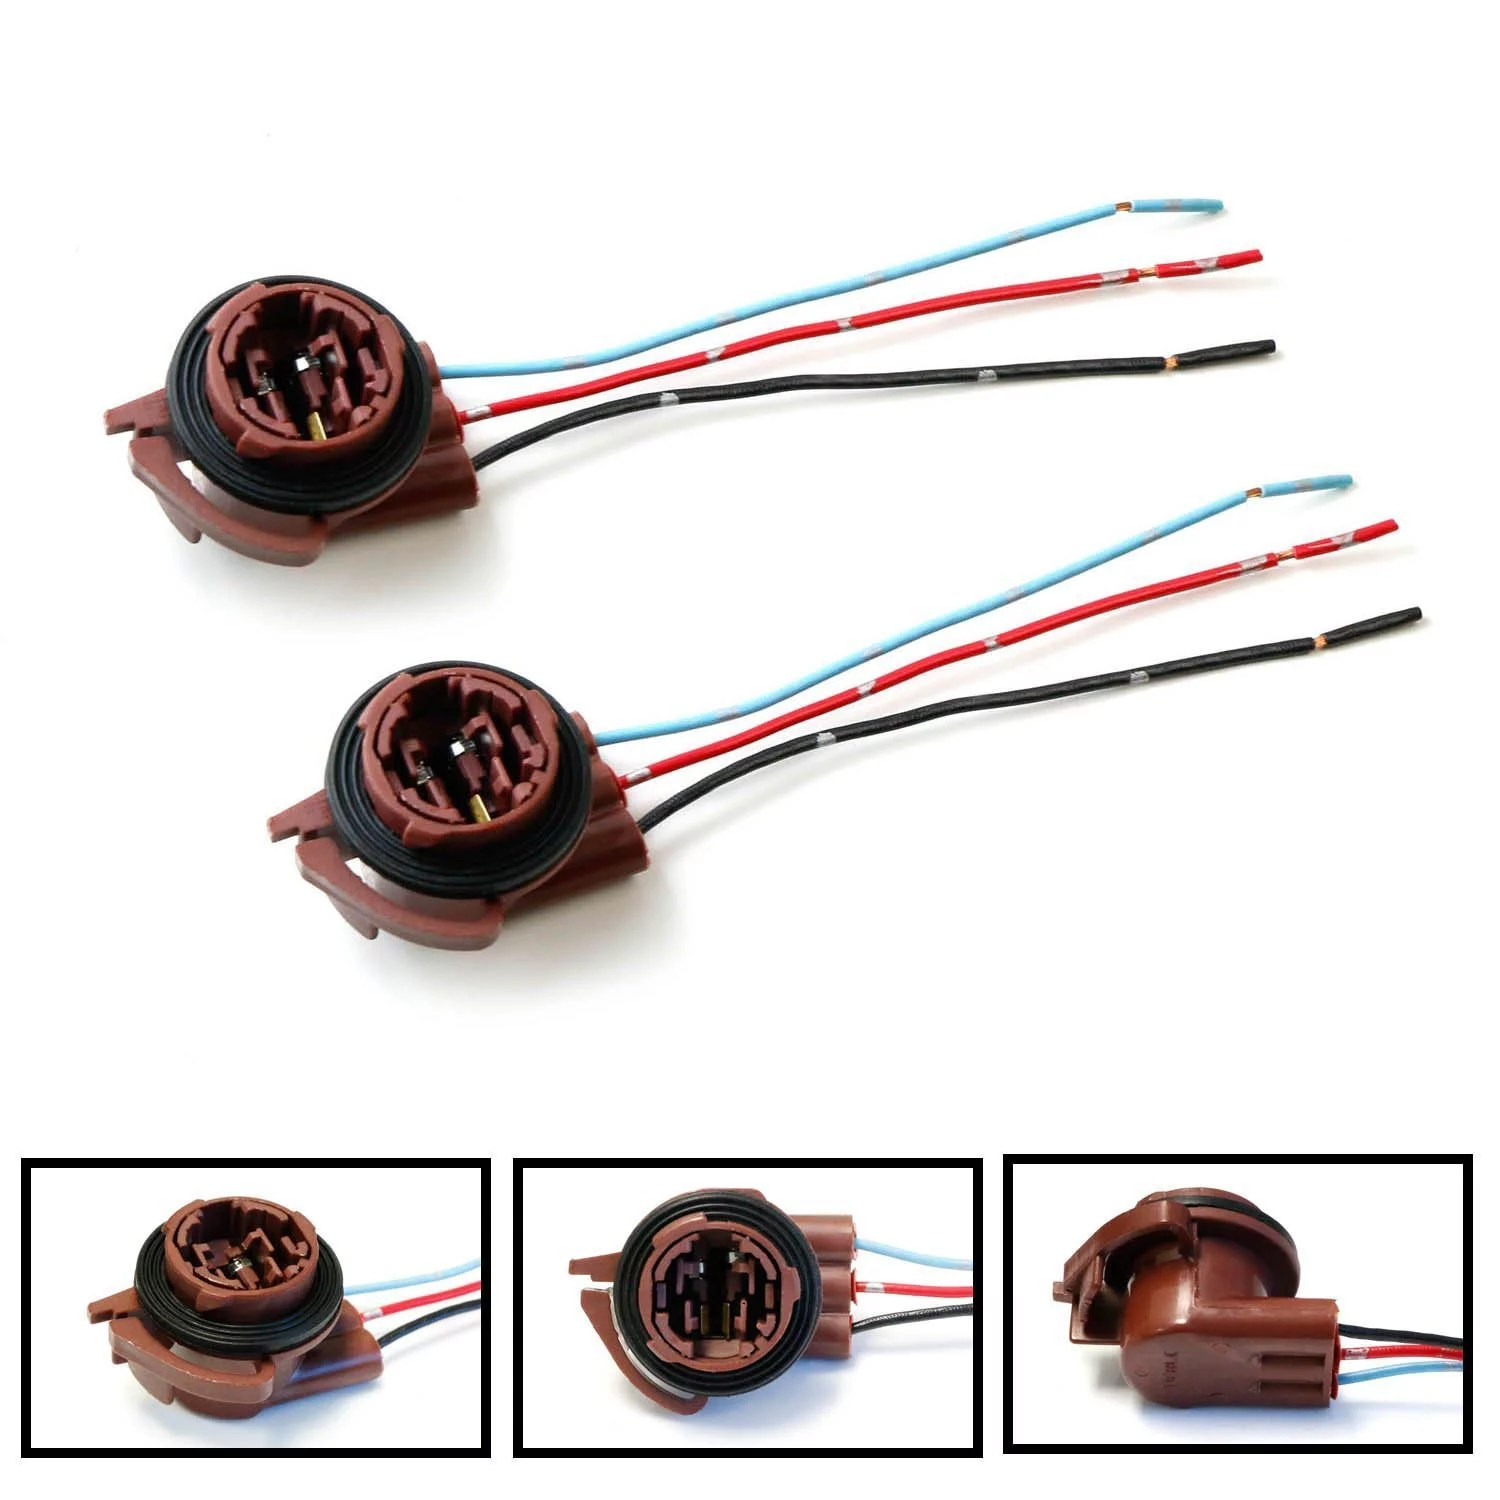 ijdmtoy 2 3156 3157 pre wired harness sockets for repair wiring led dimmers ijdmtoy [ 1500 x 1500 Pixel ]